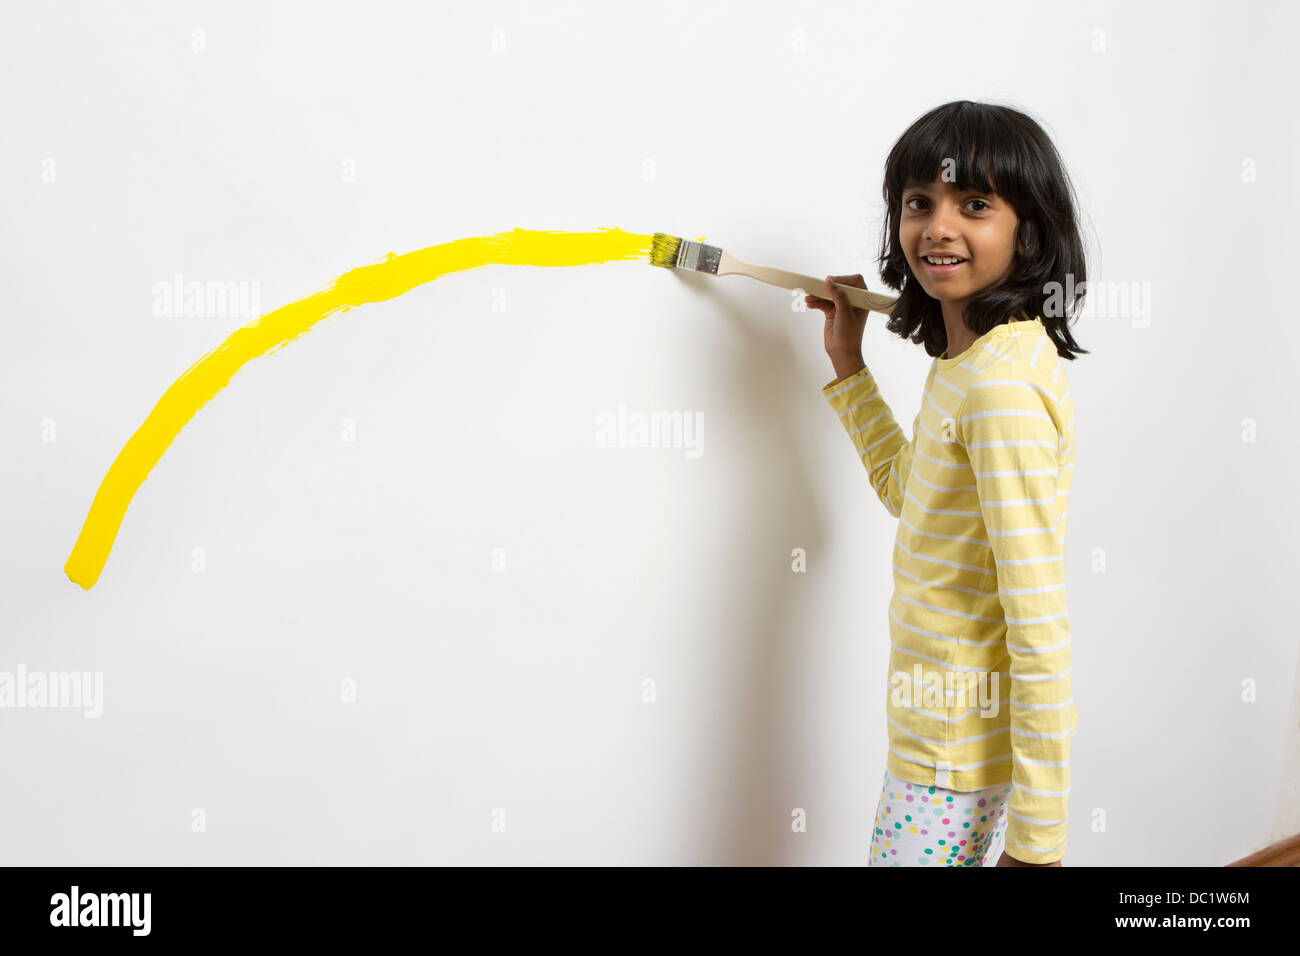 Portrait of girl painting yellow curve on wall - Stock Image